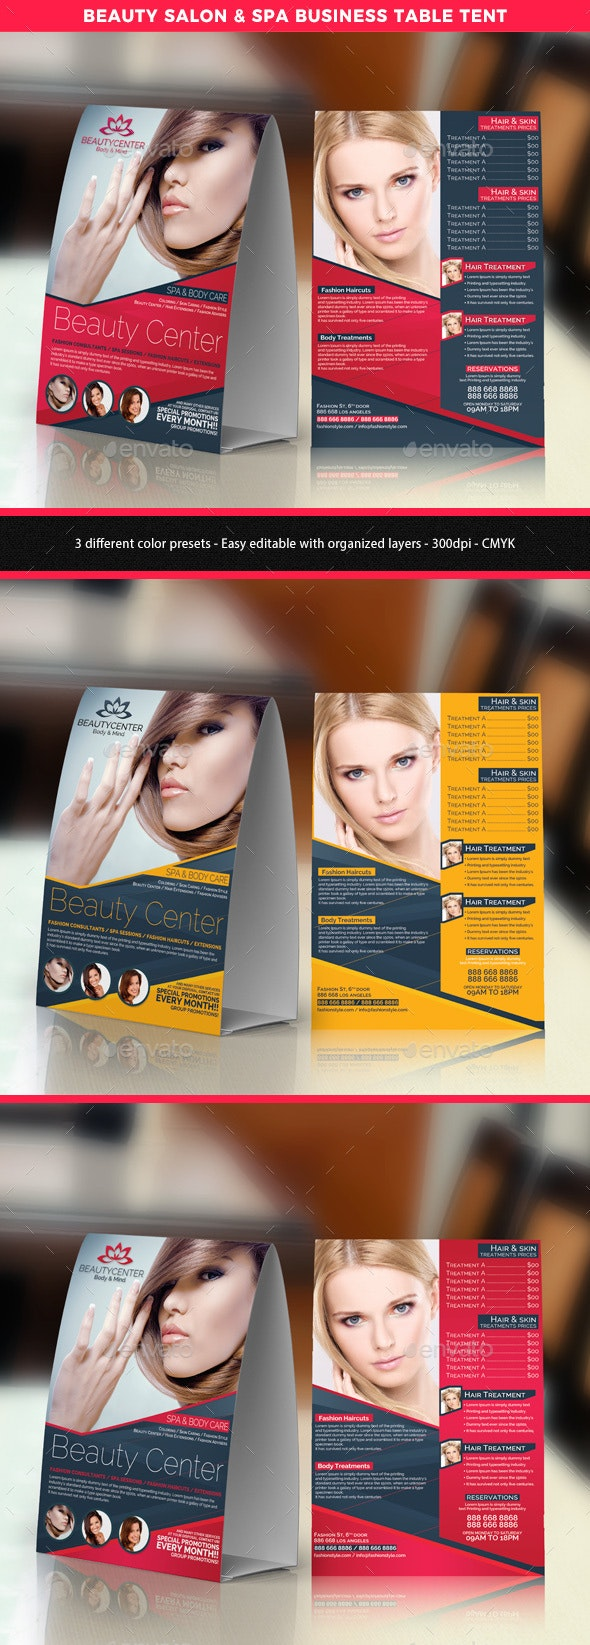 Beauty Center Table Tent Template - Print Templates